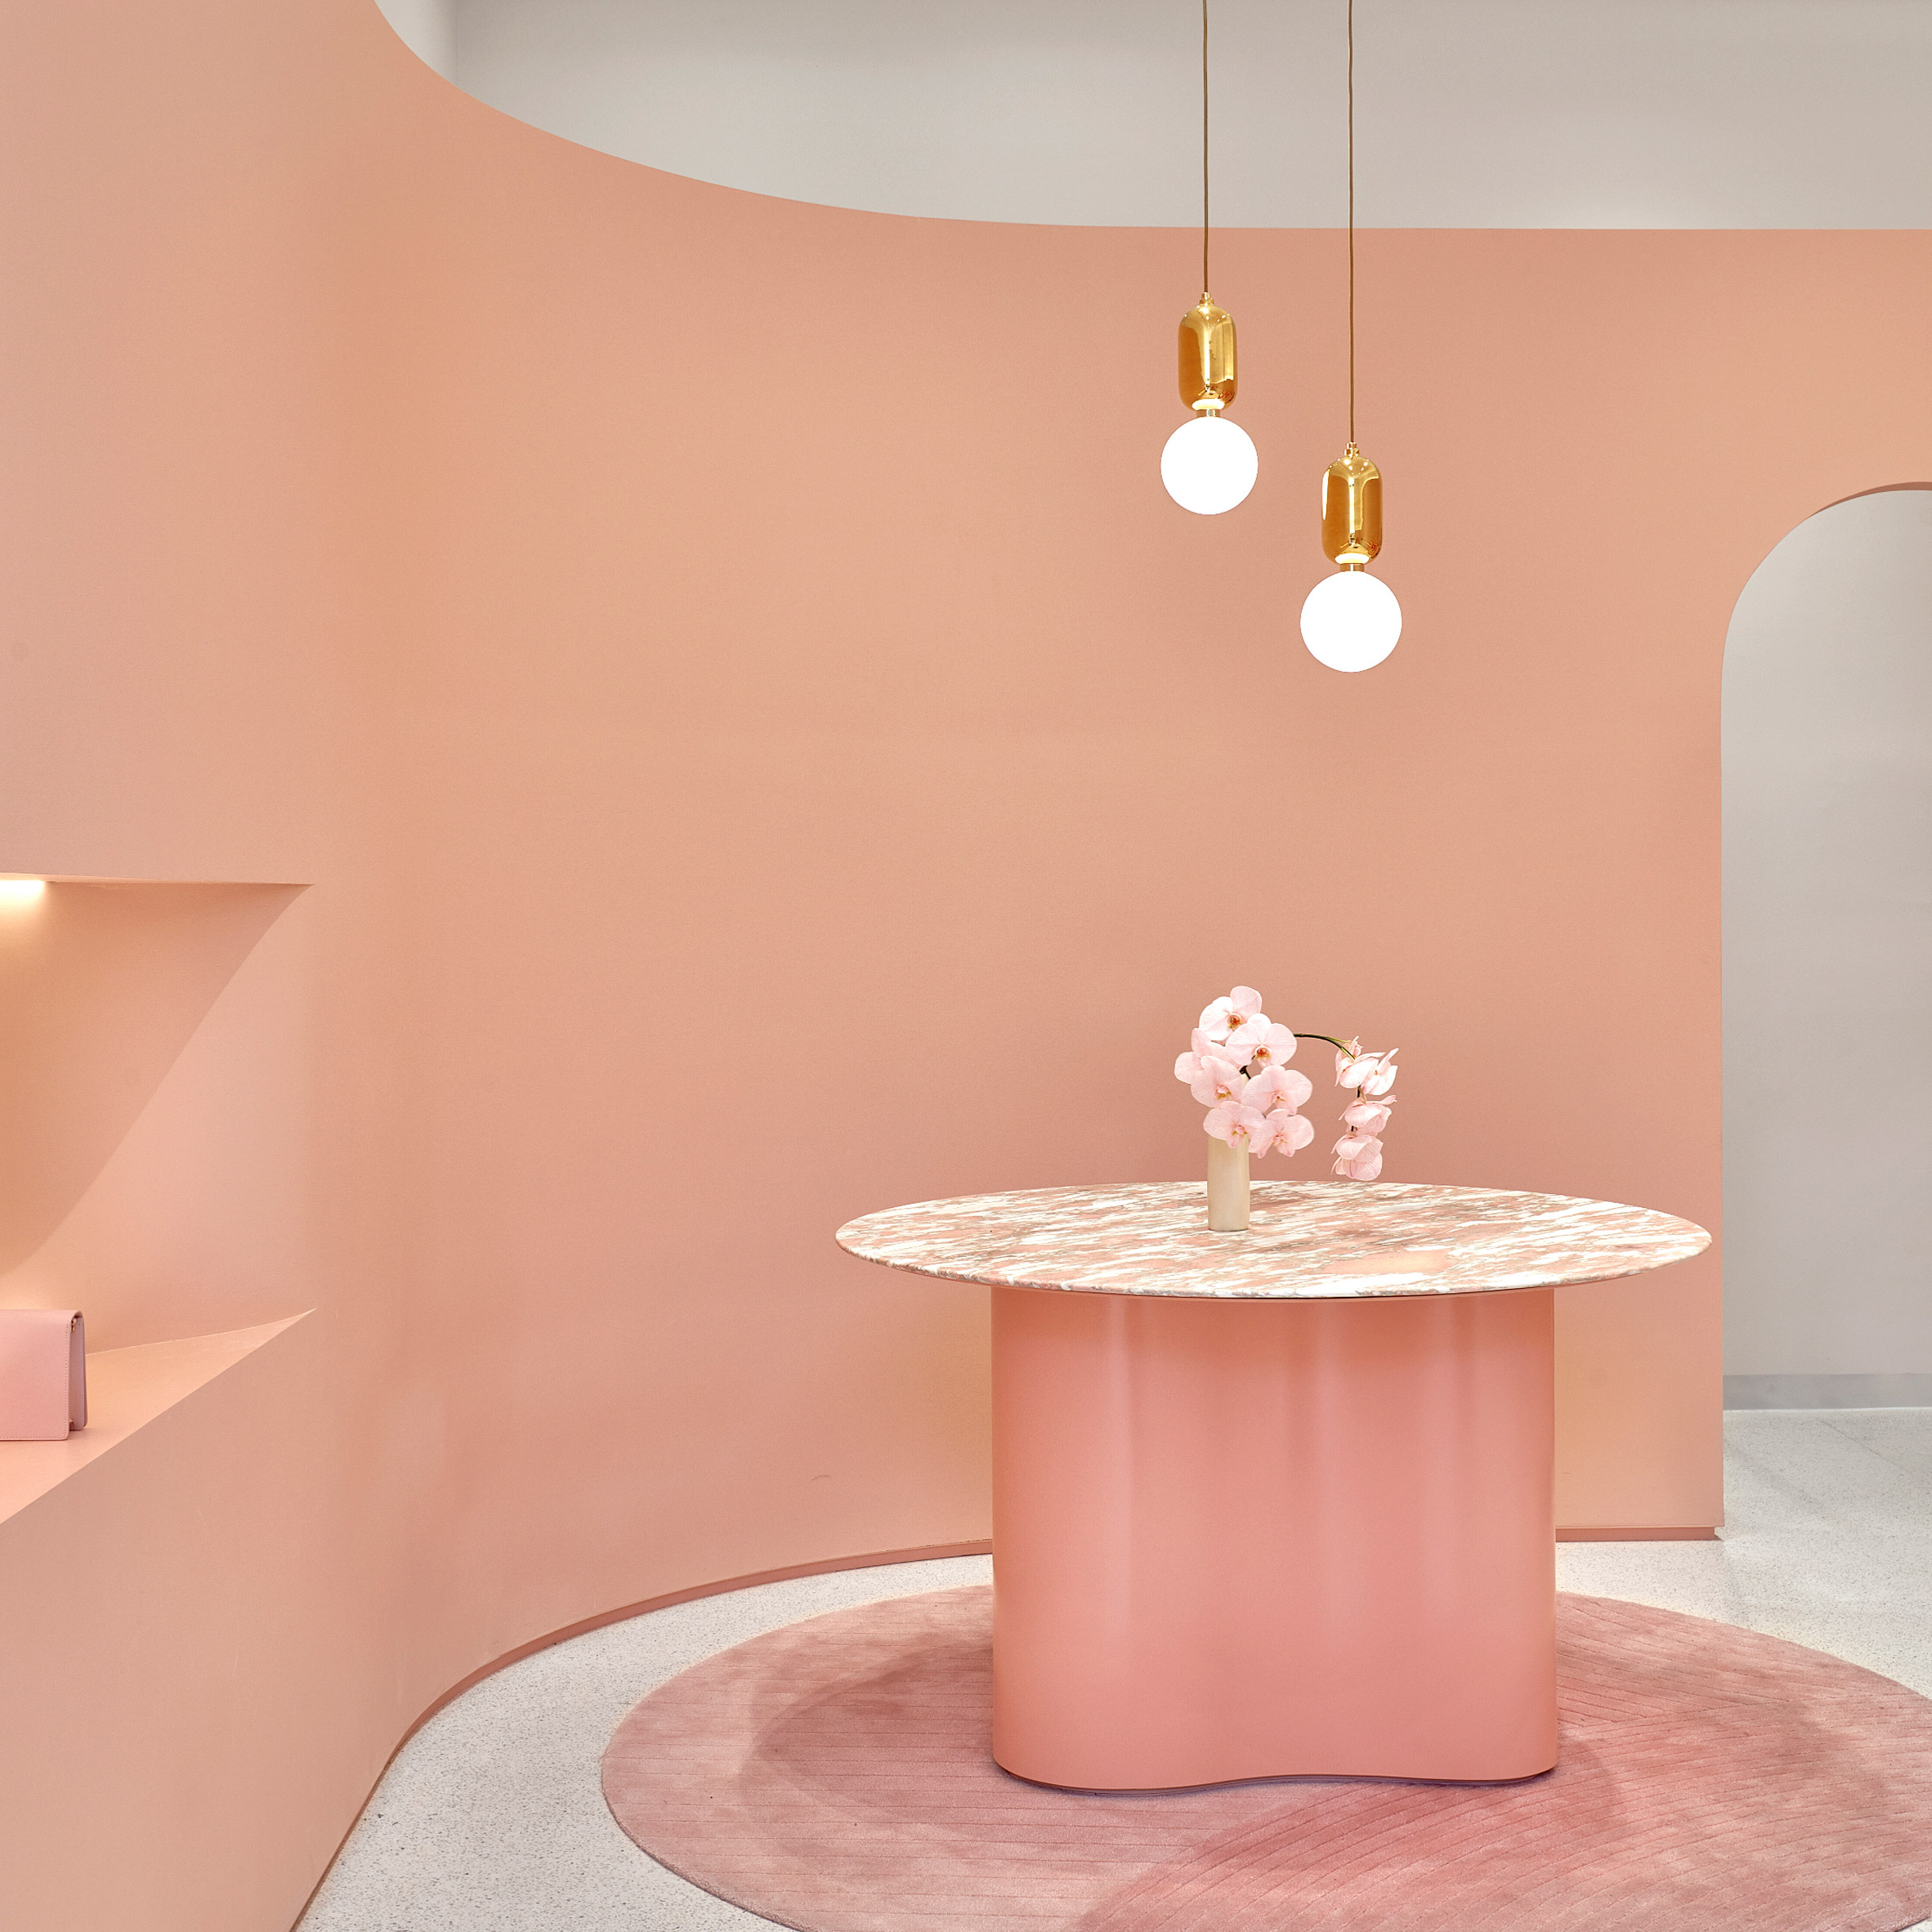 Dezeen's top 10 shops of 2018: The Daily Edited by Pattern Studio